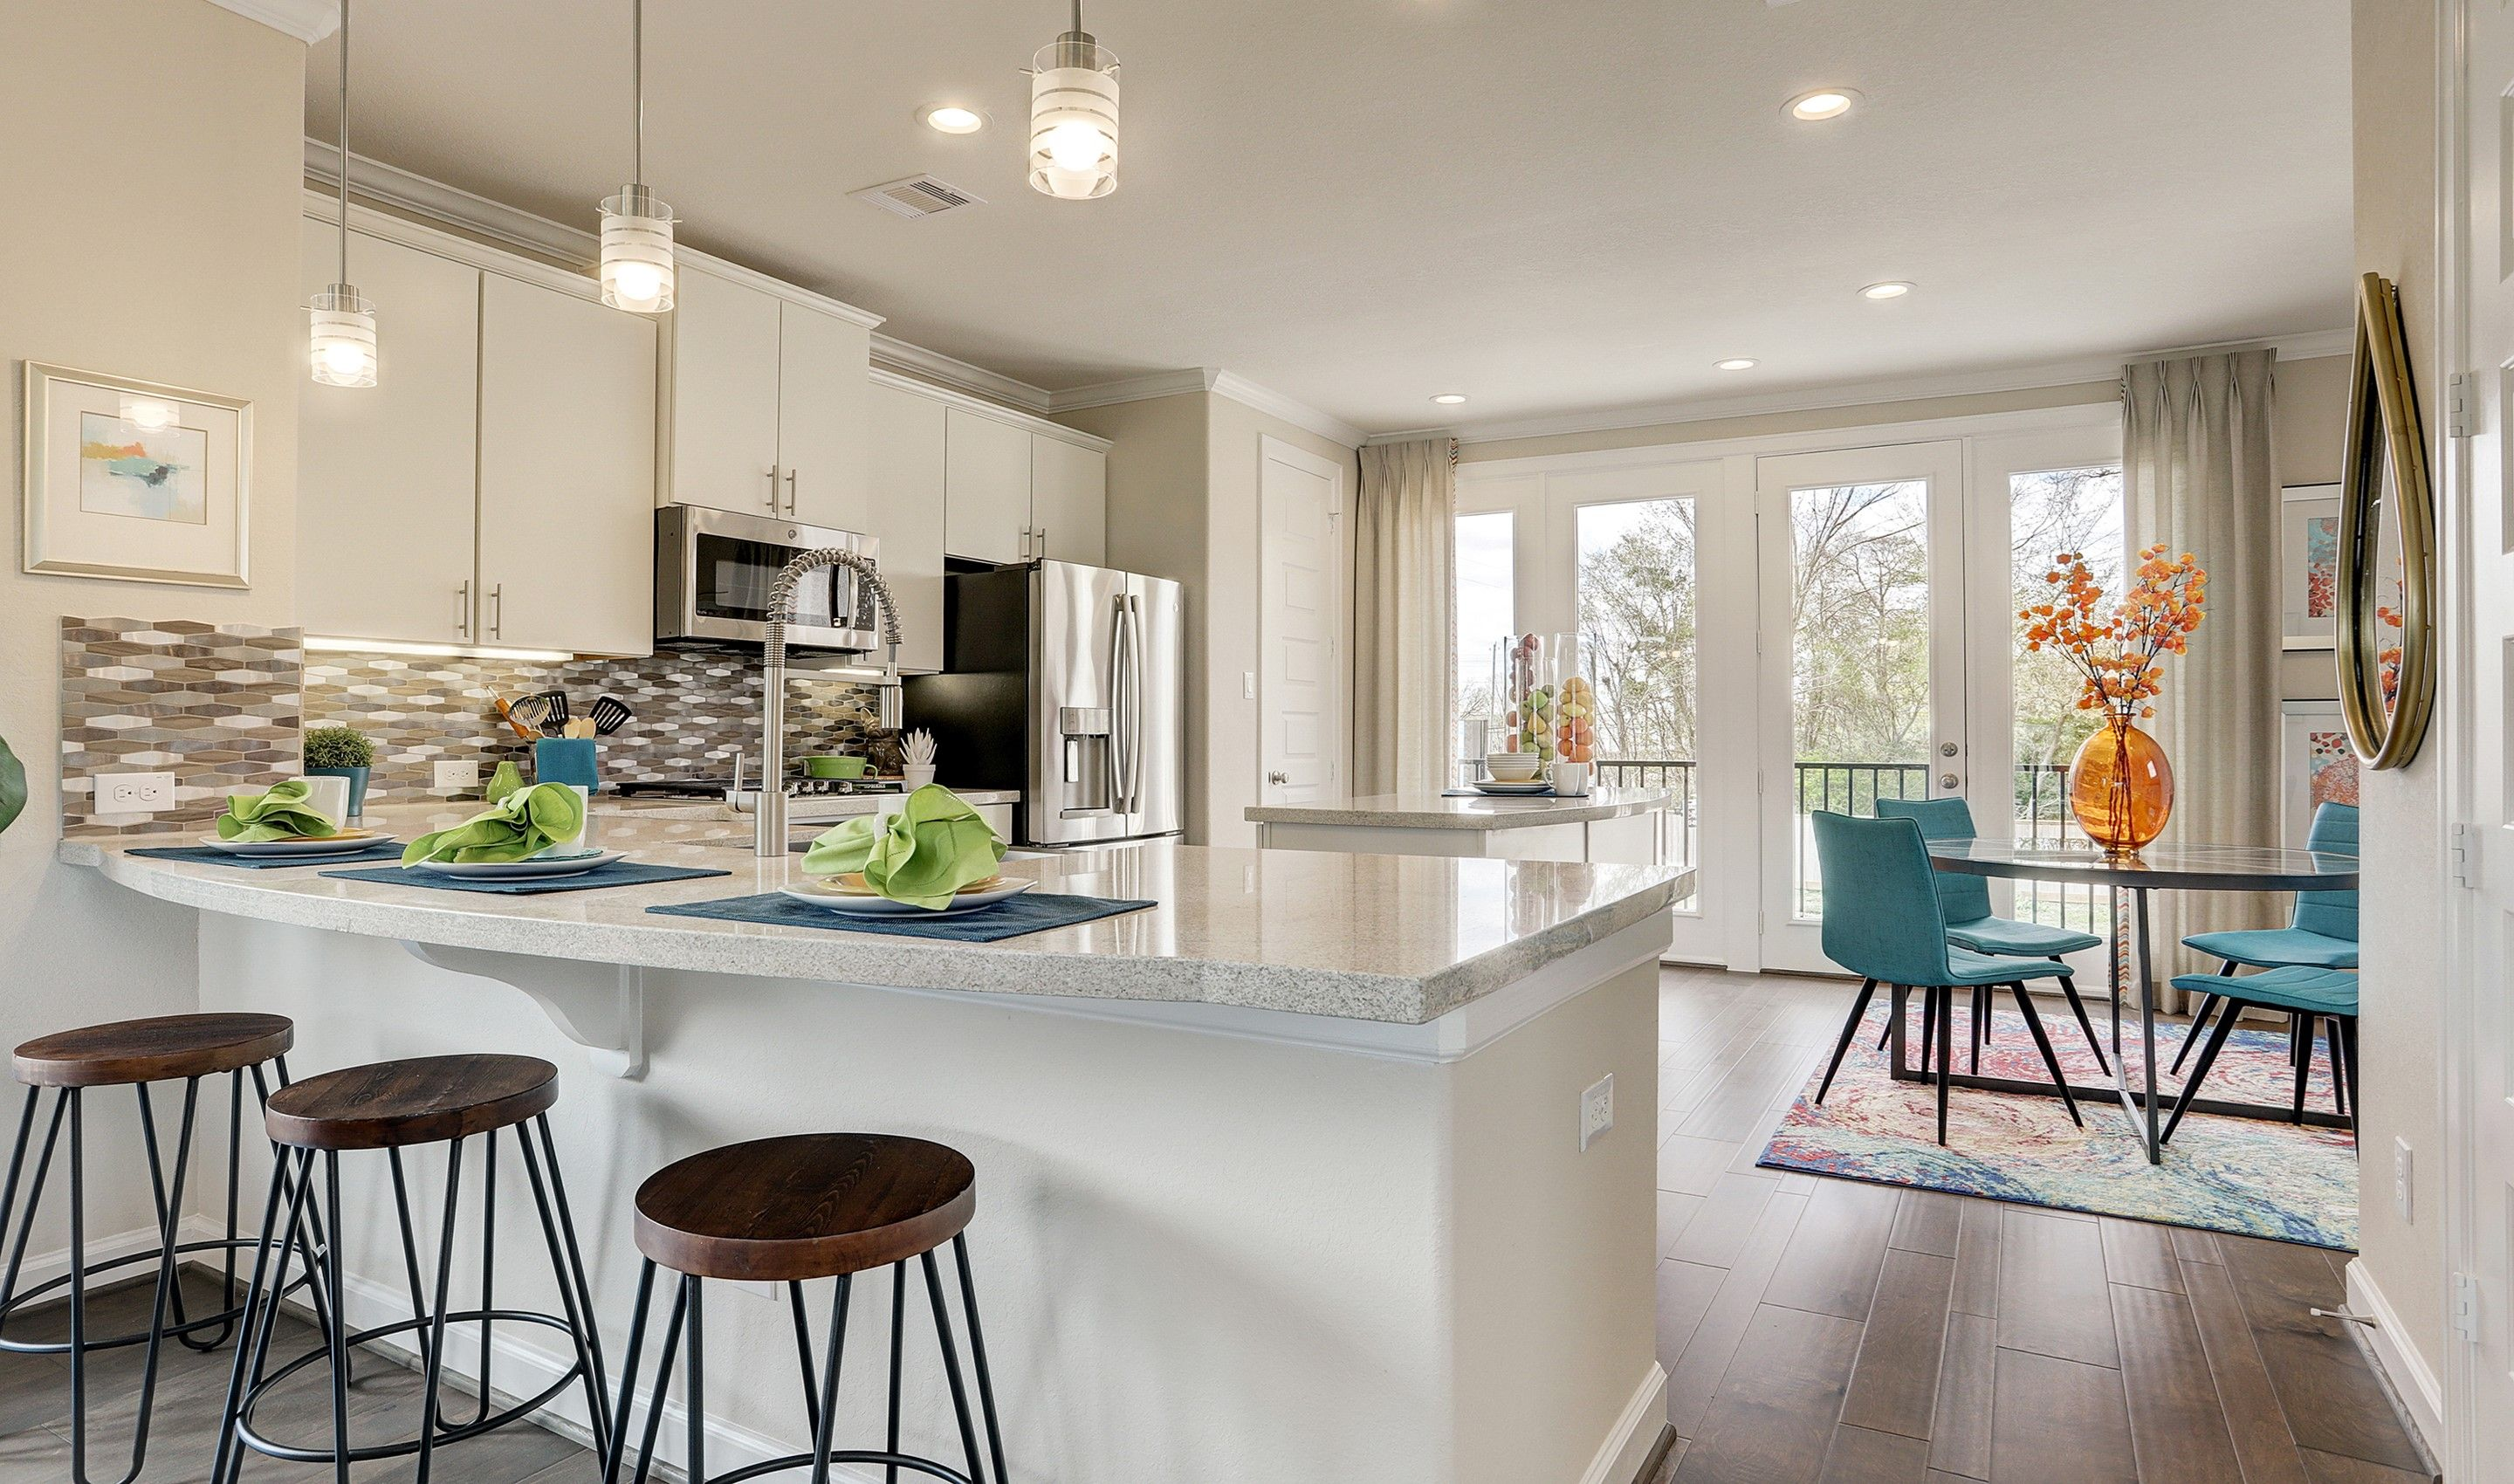 Kitchen featured in the Radcliffe II By K. Hovnanian® Homes in Houston, TX